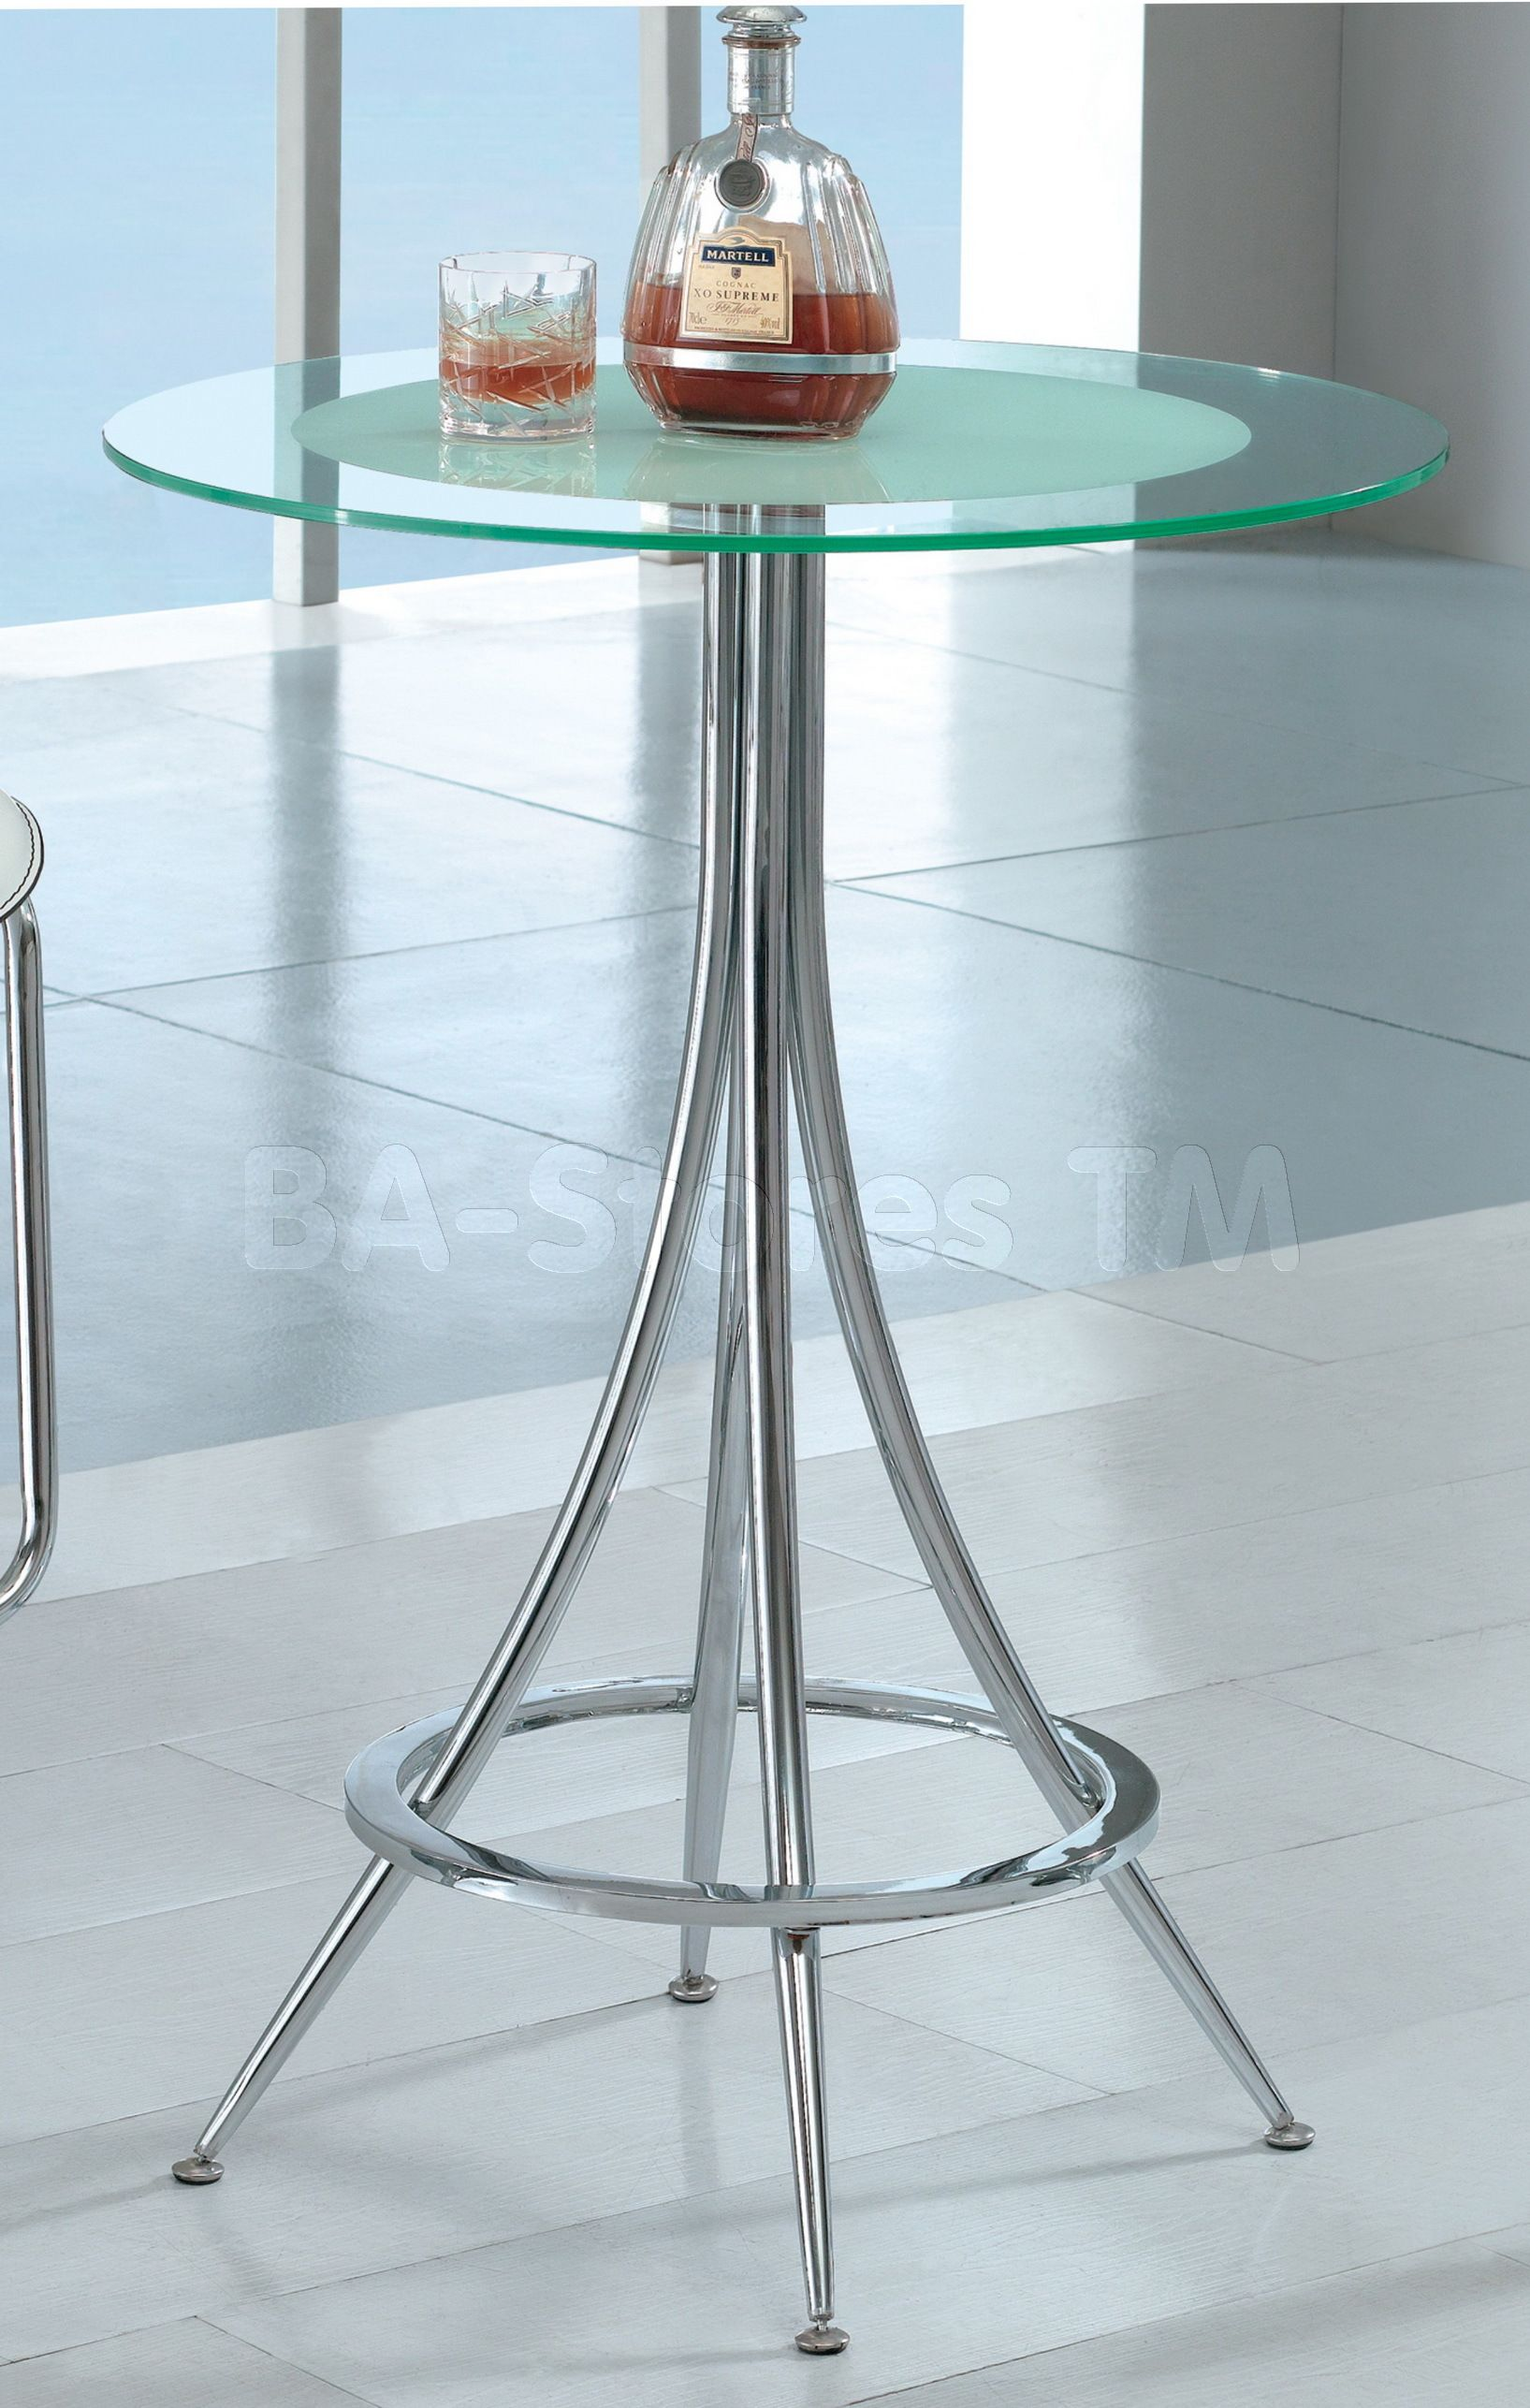 American Eagle Furniture White And Chrome Colored Glass Bar Table | Bar, Pub  Tables U0026 Sets AEF B8006 WT/0